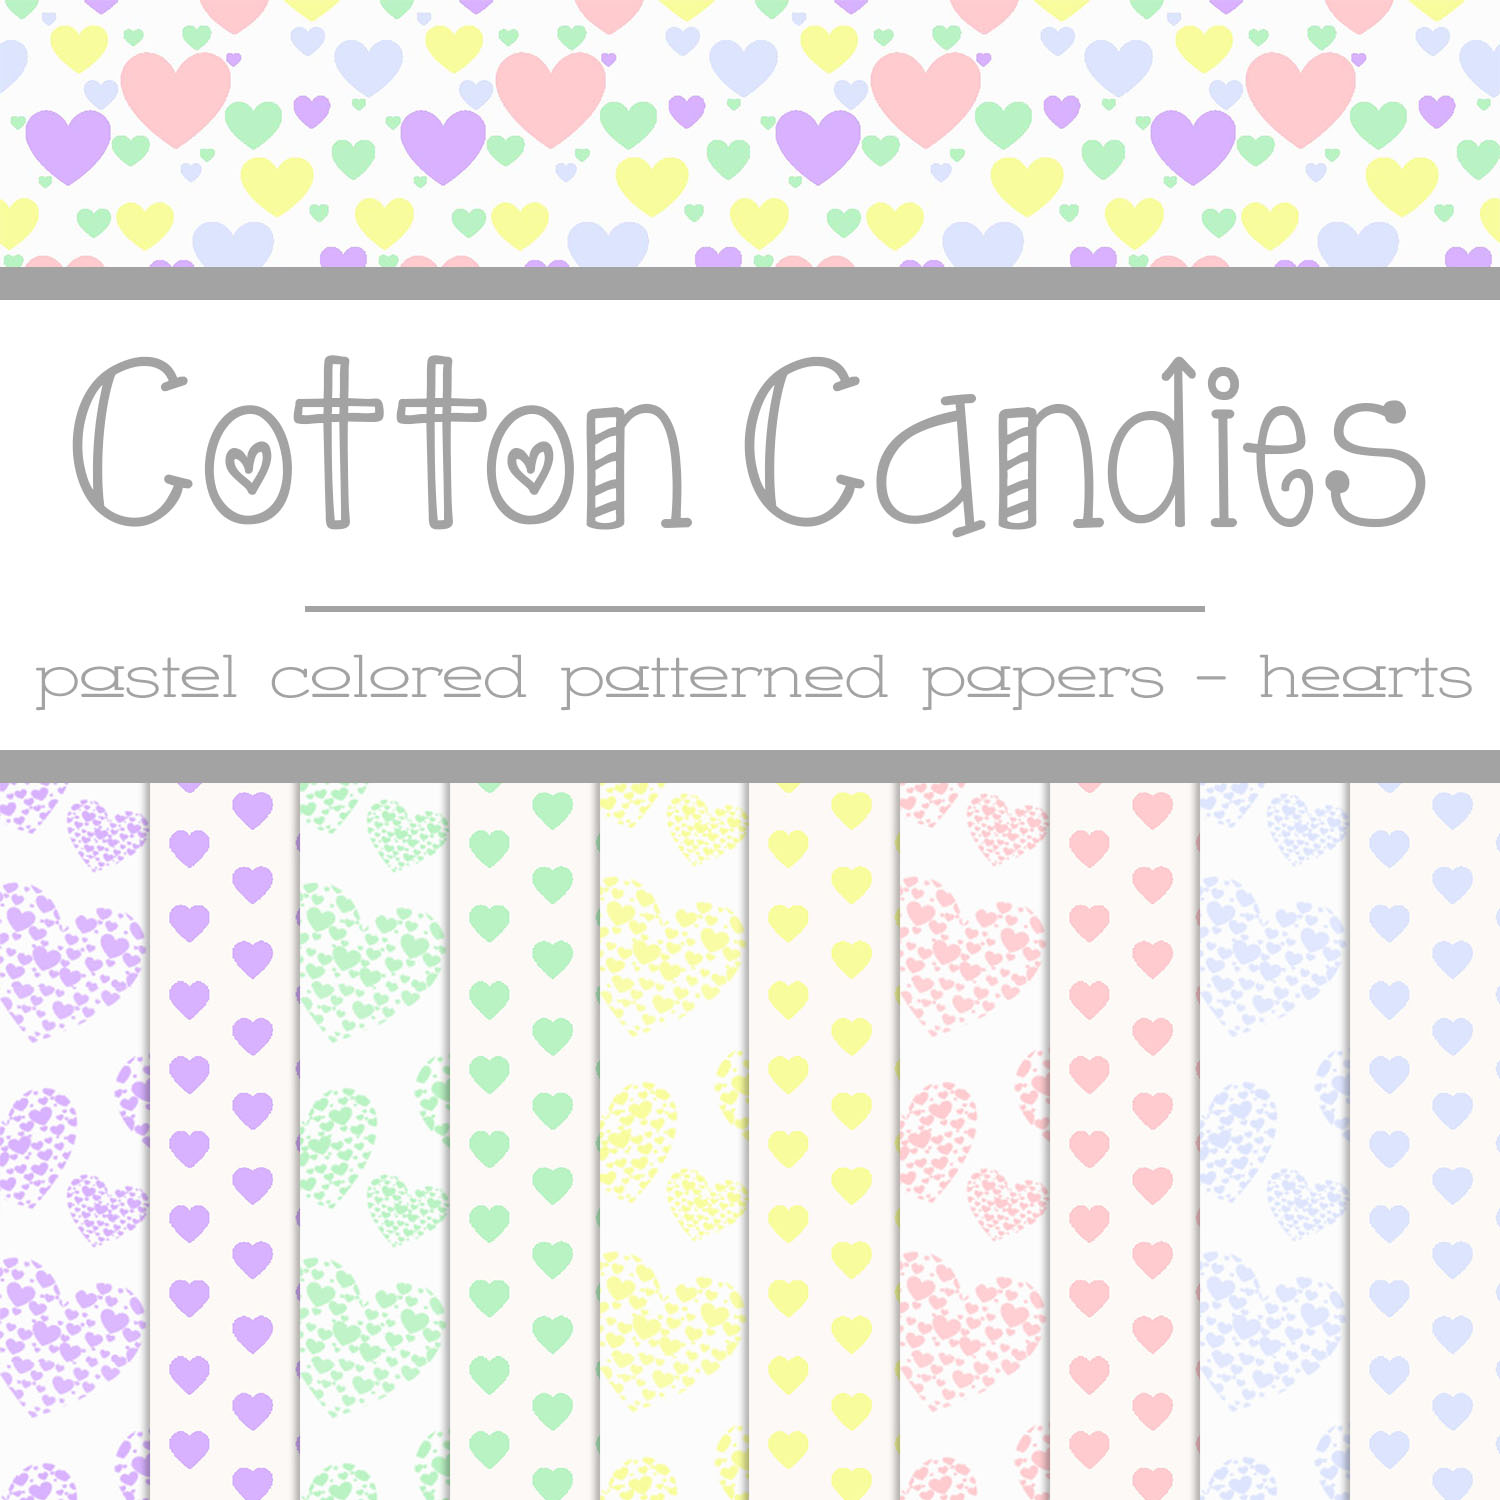 Free Cotton Candies: Heart Patterned Papers by TeacherYanie